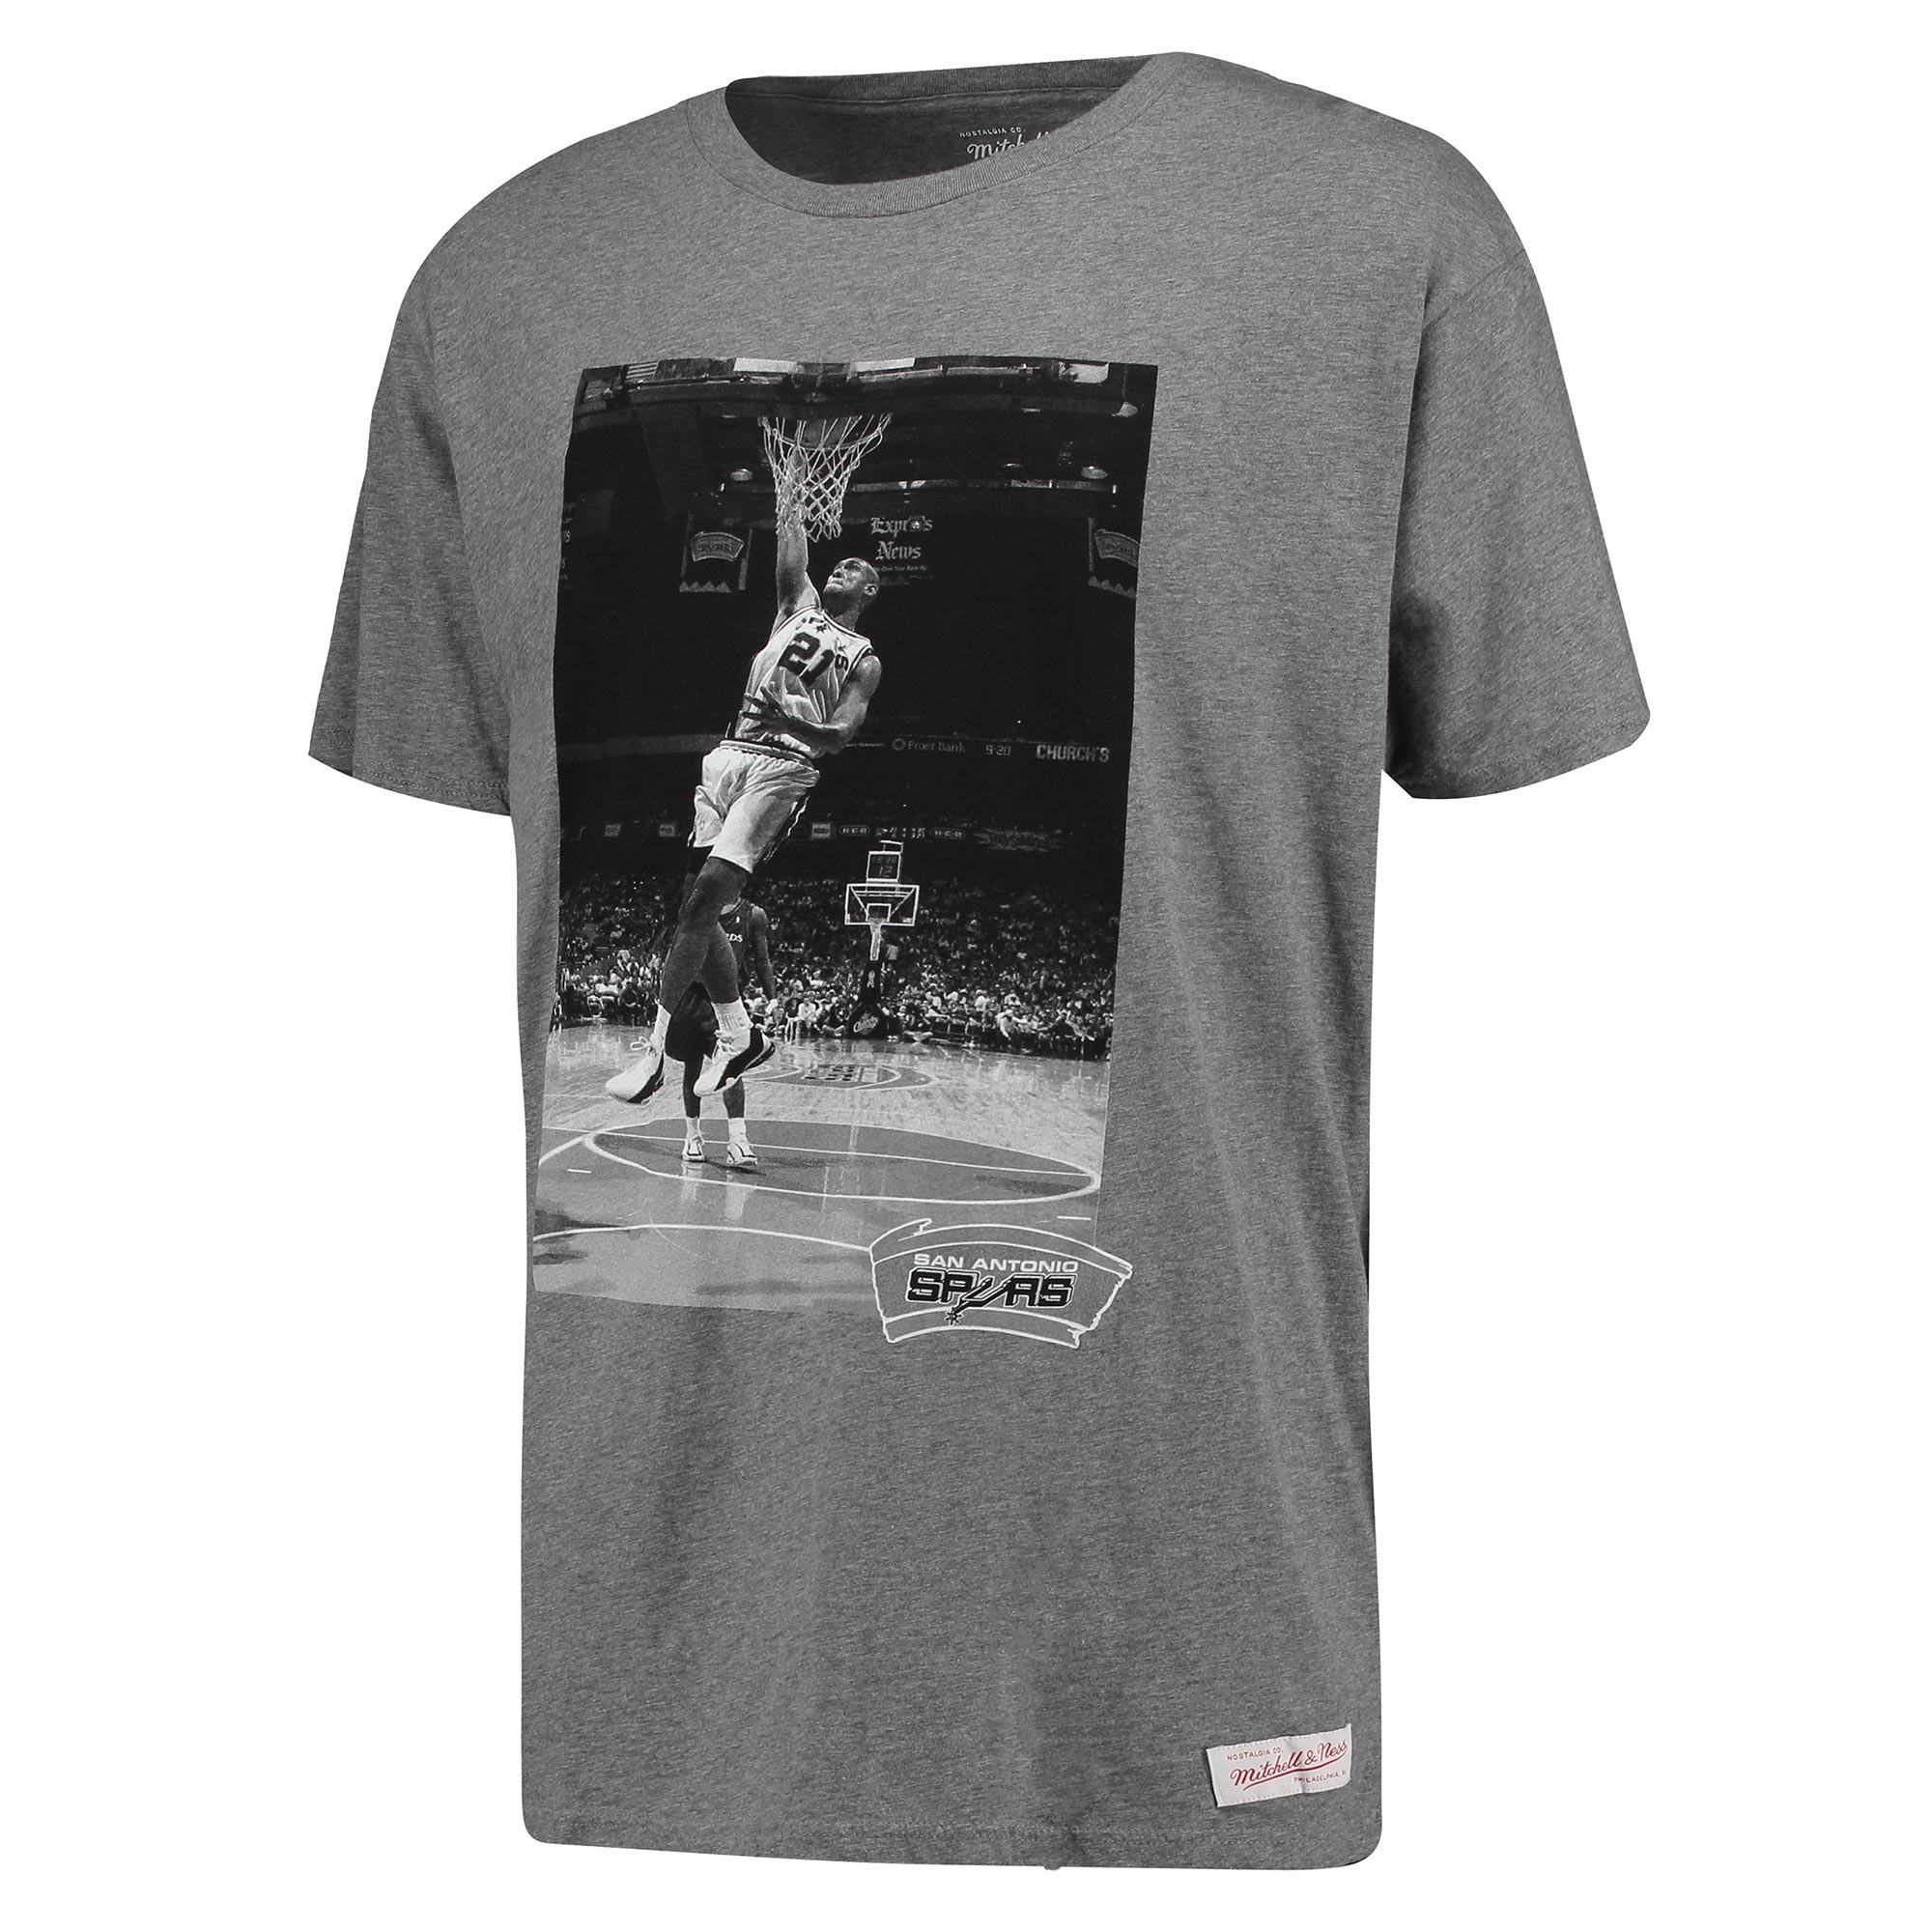 San Antonio Spurs Tim Duncan B&W Photo T-Shirt by Mitchell & Ness - Gr